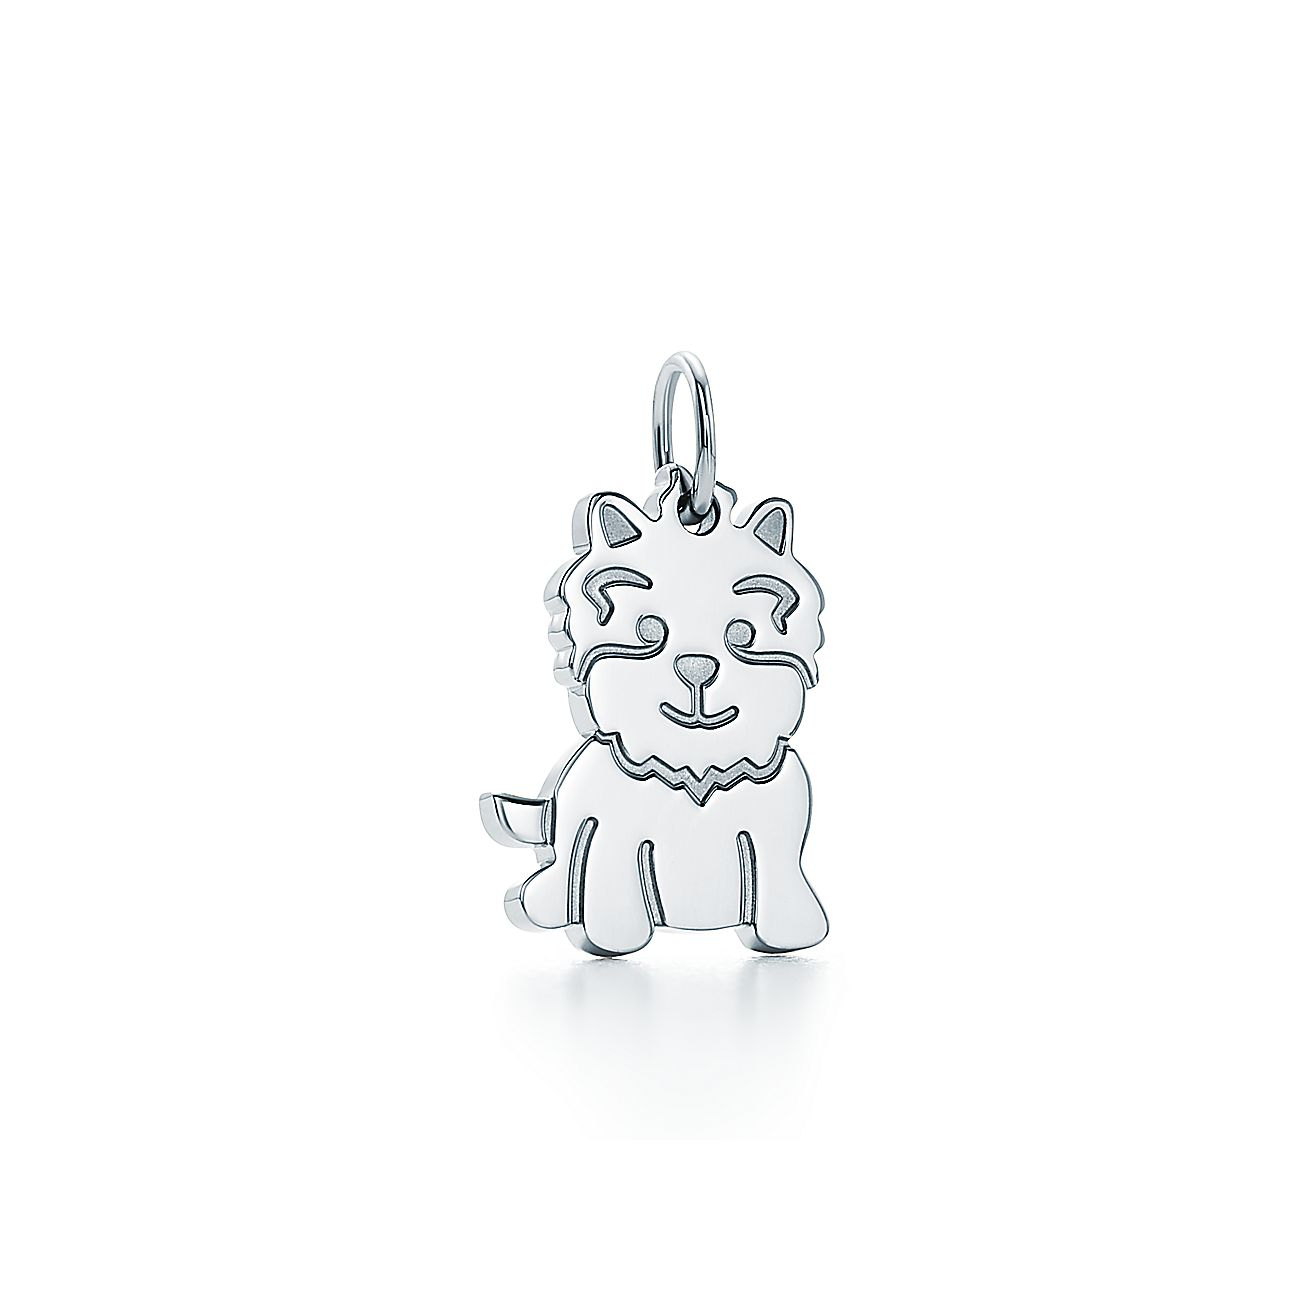 Tiffany charms new yorkie charm in sterling silver tiffany co aloadofball Image collections